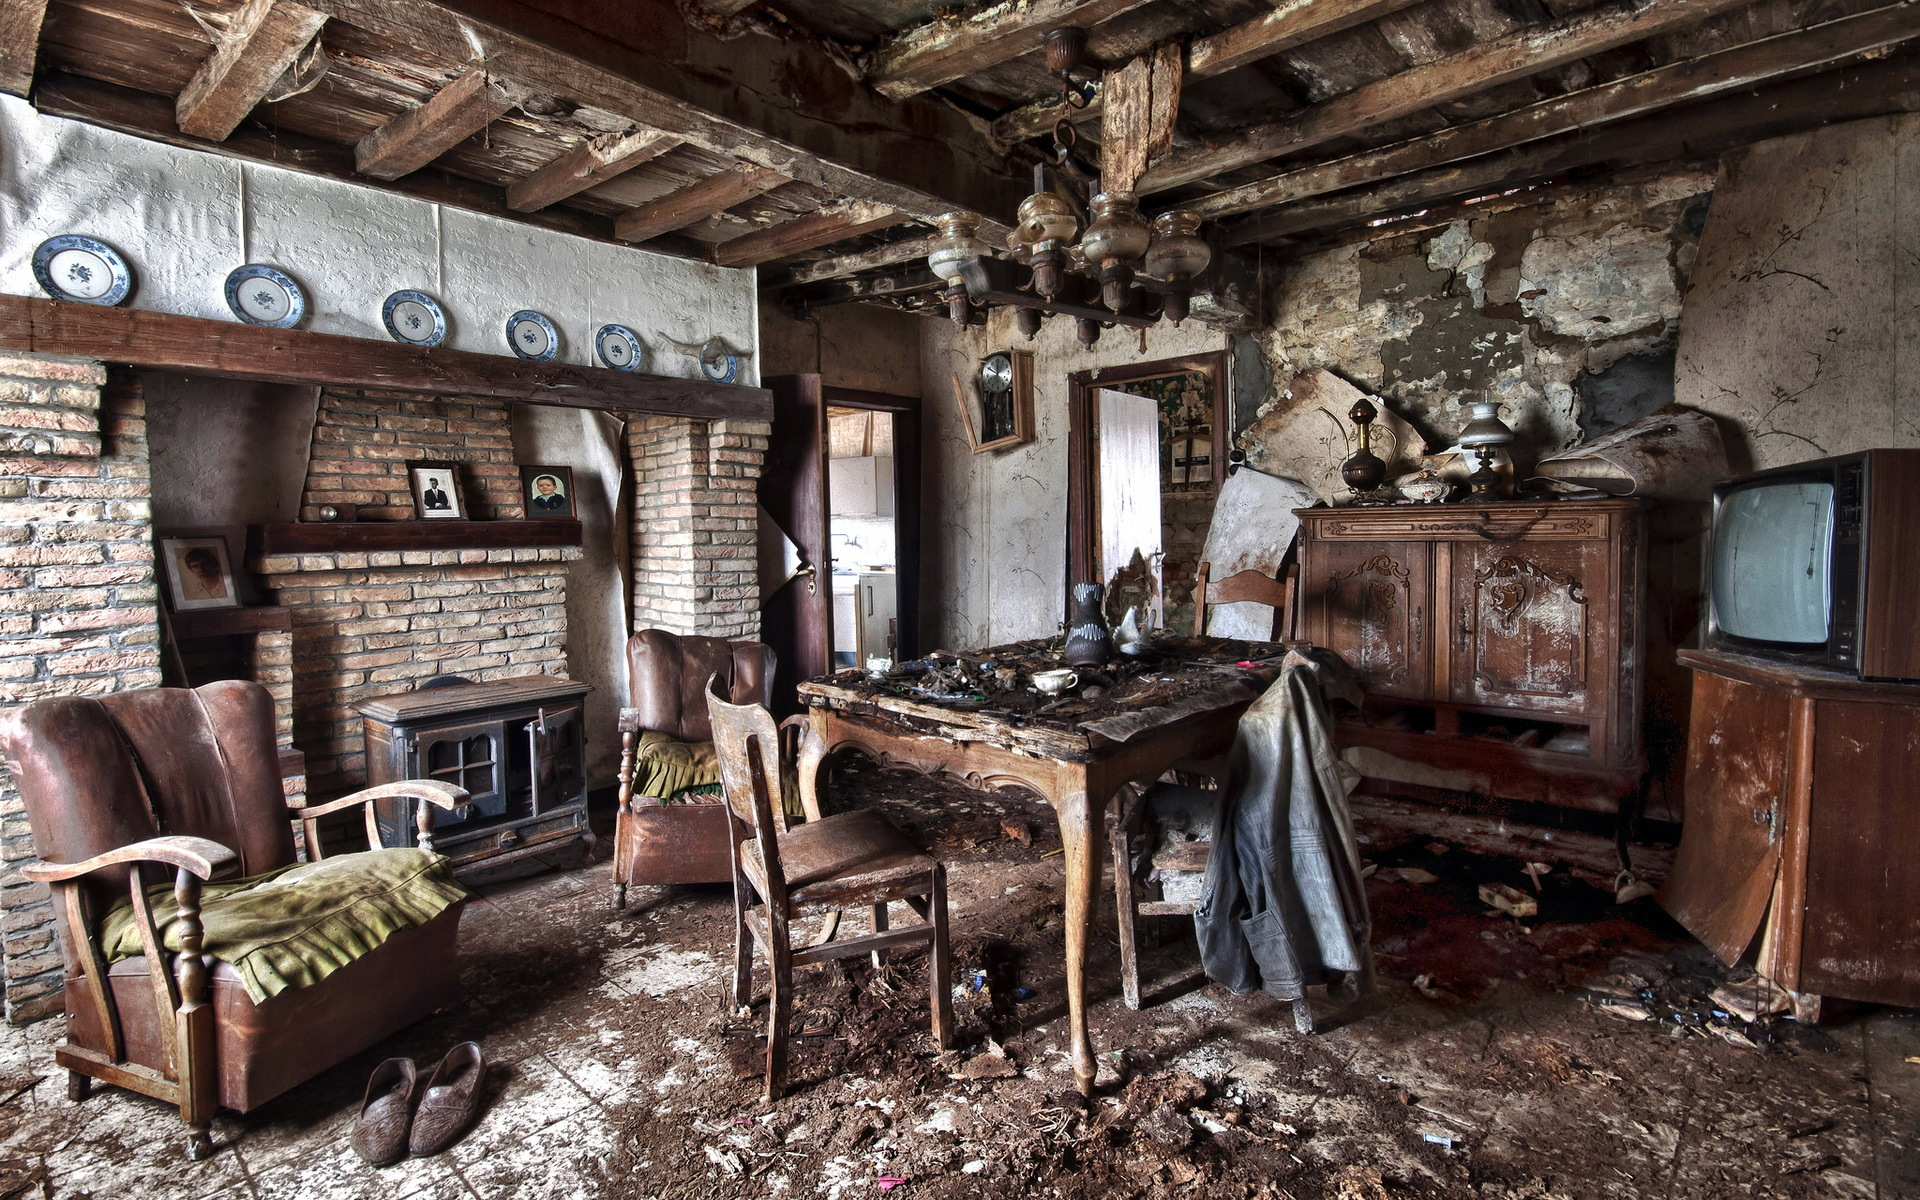 Interior old table armchair room design ruins apocalyptic for Interior post designs